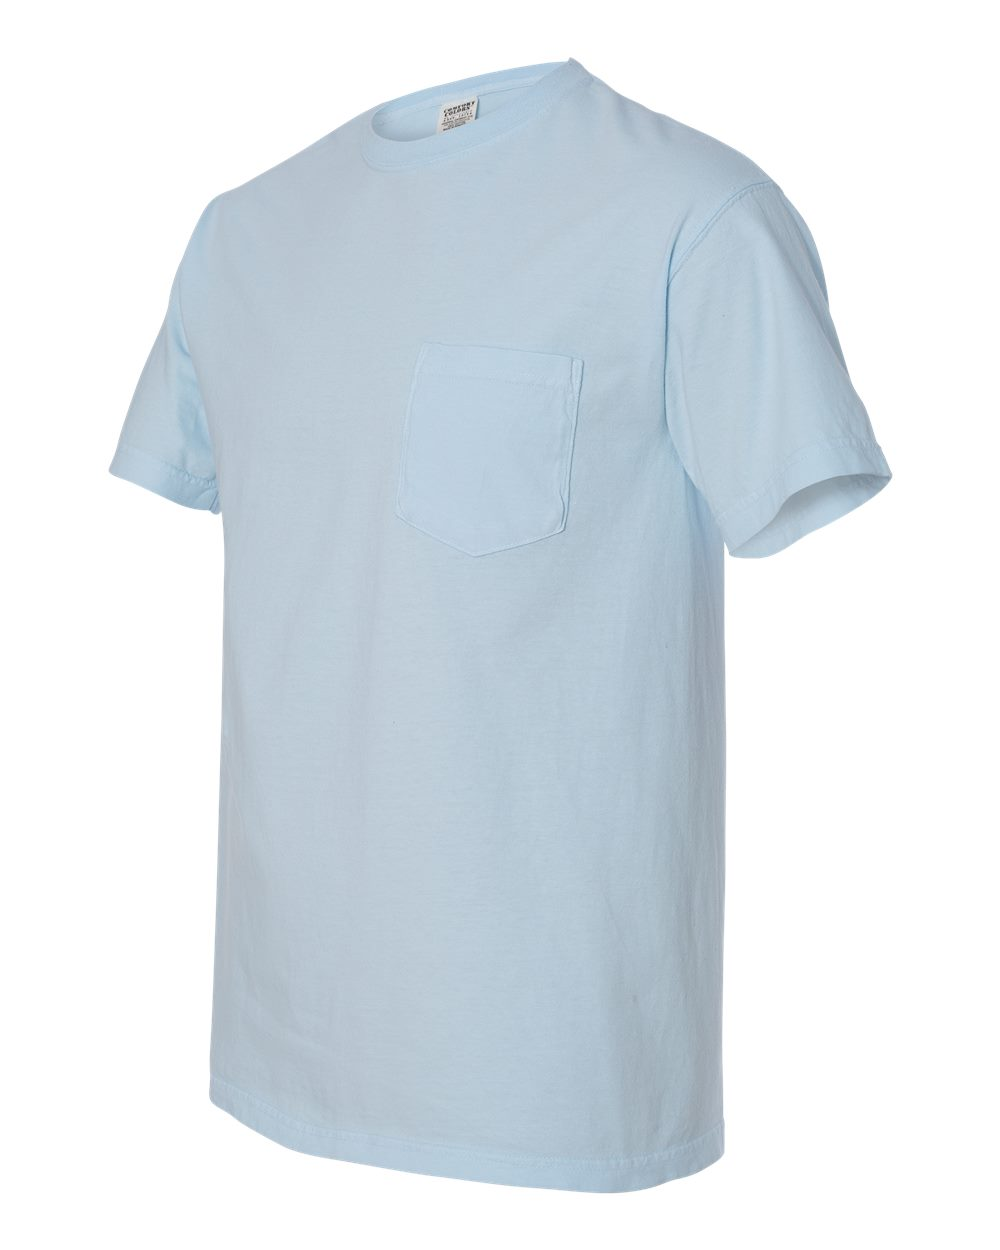 Comfort-Colors-Men-039-s-6-1-oz-Garment-Dyed-Pocket-T-Shirt-6030CC-S-3XL thumbnail 24